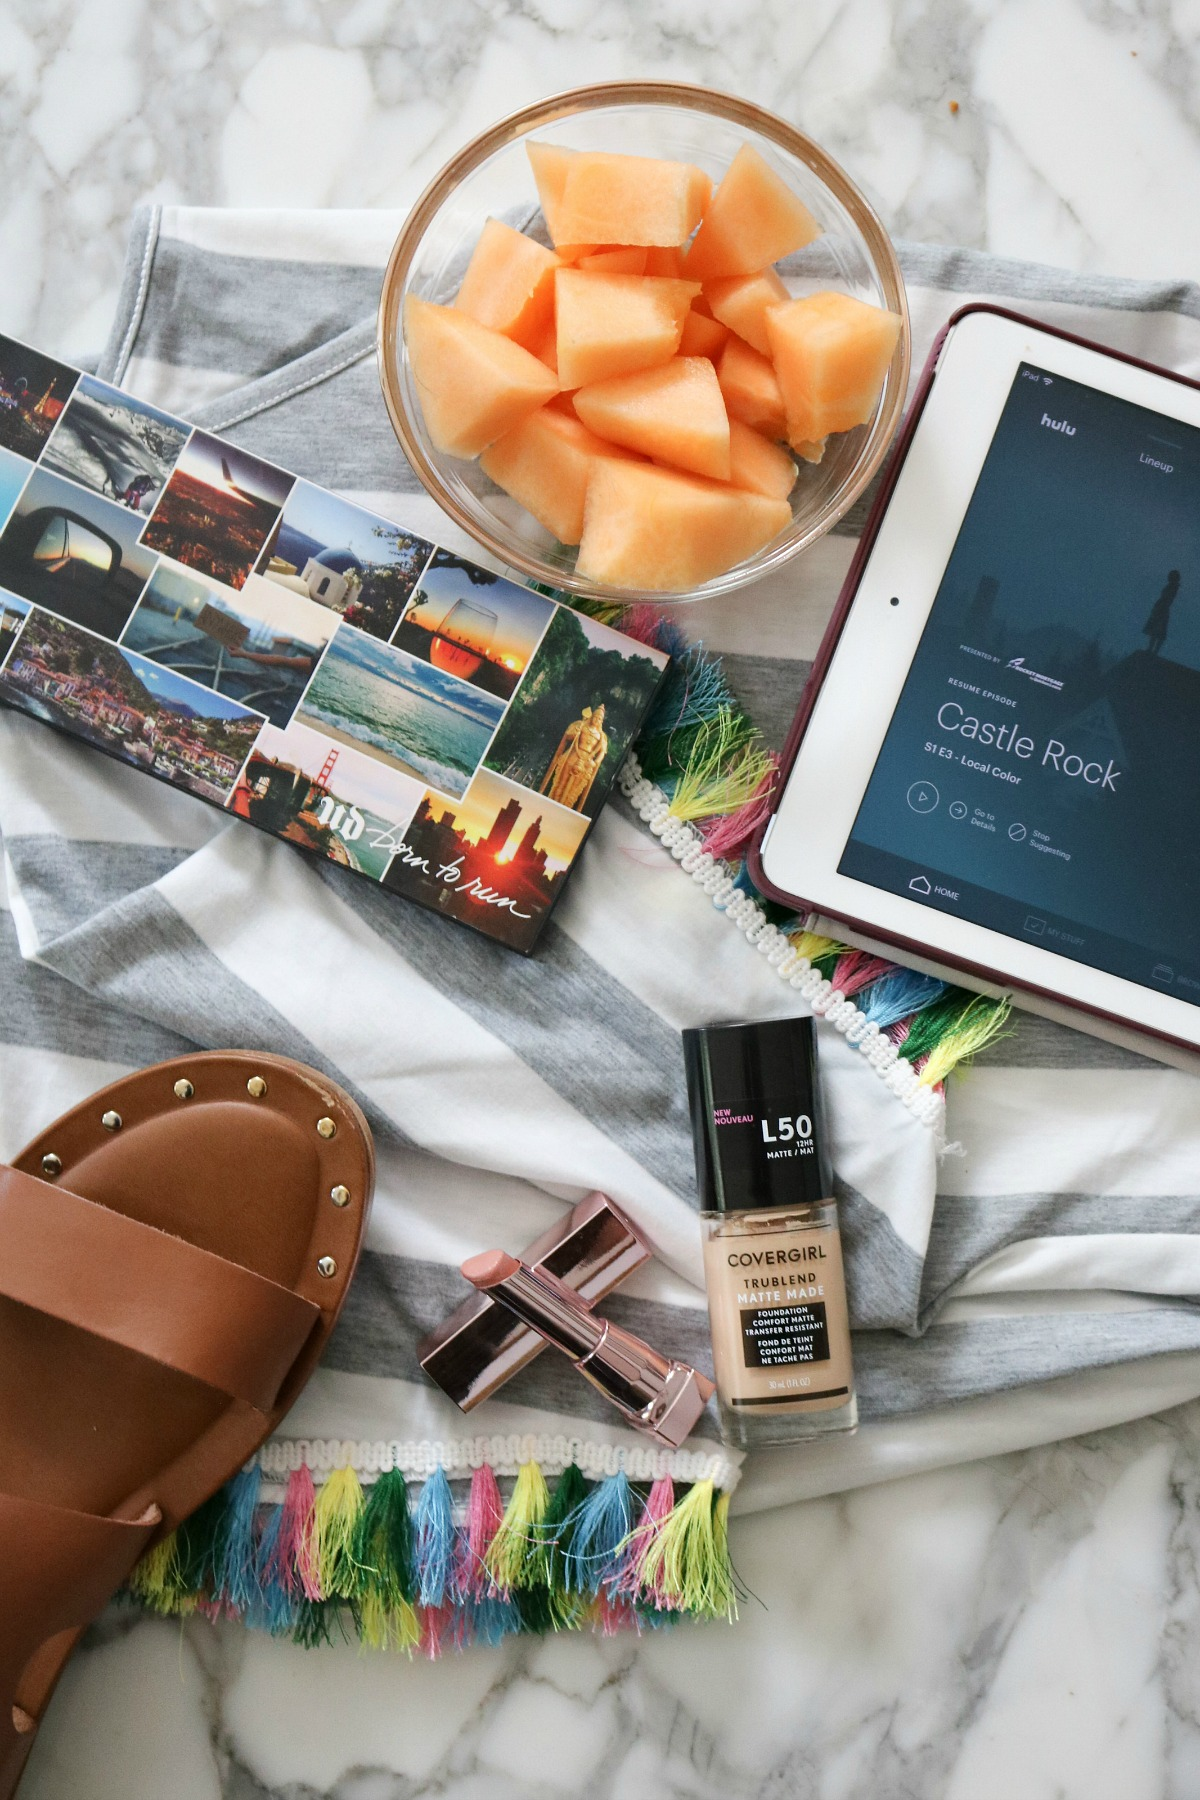 2018 Summer Favorites I From style items to makeup and television, this is everything I'm loving lately! #August #Makeup #SummerFavorites